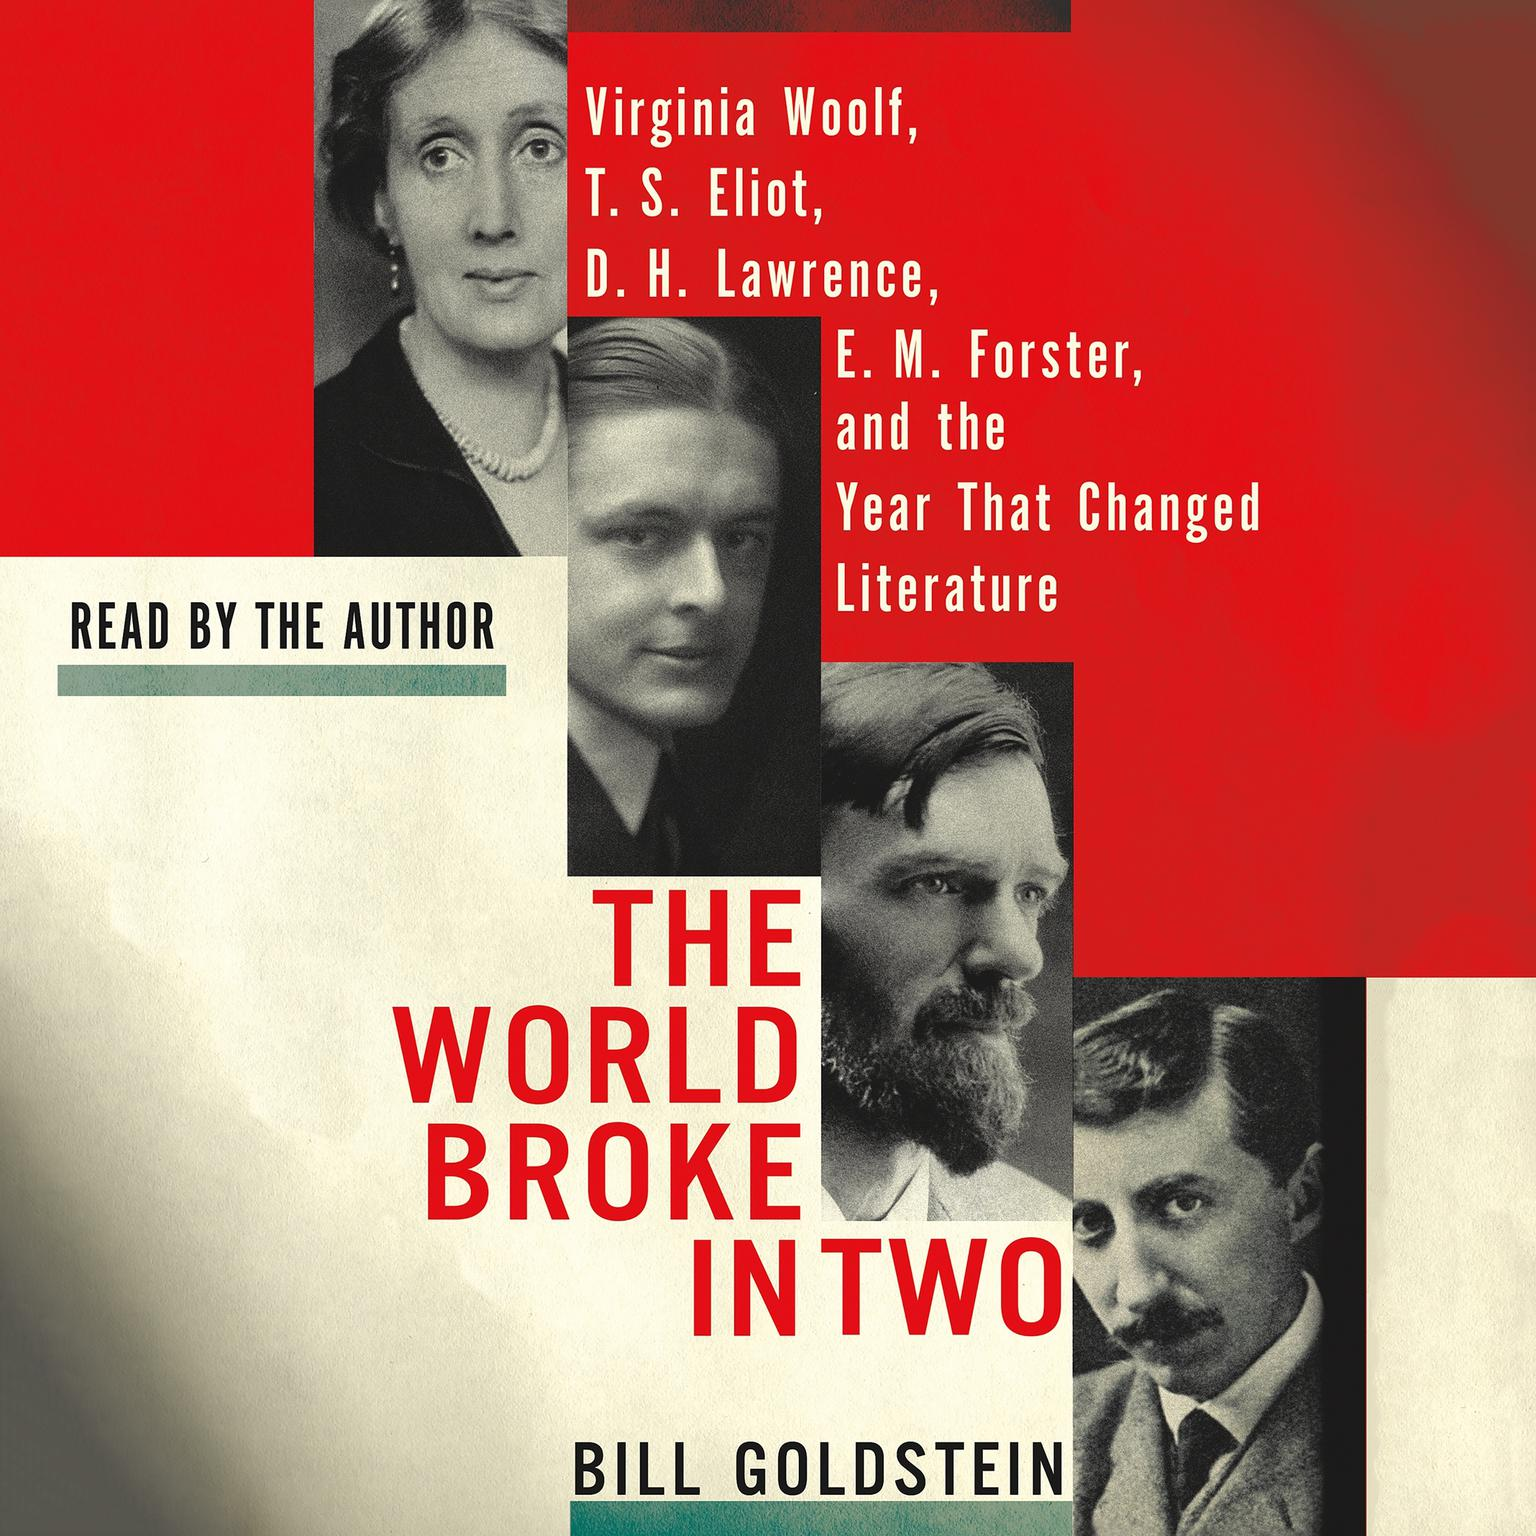 Printable The World Broke in Two: Virginia Woolf, T. S. Eliot, D. H. Lawrence, E. M. Forster, and the Year That Changed Literature Audiobook Cover Art